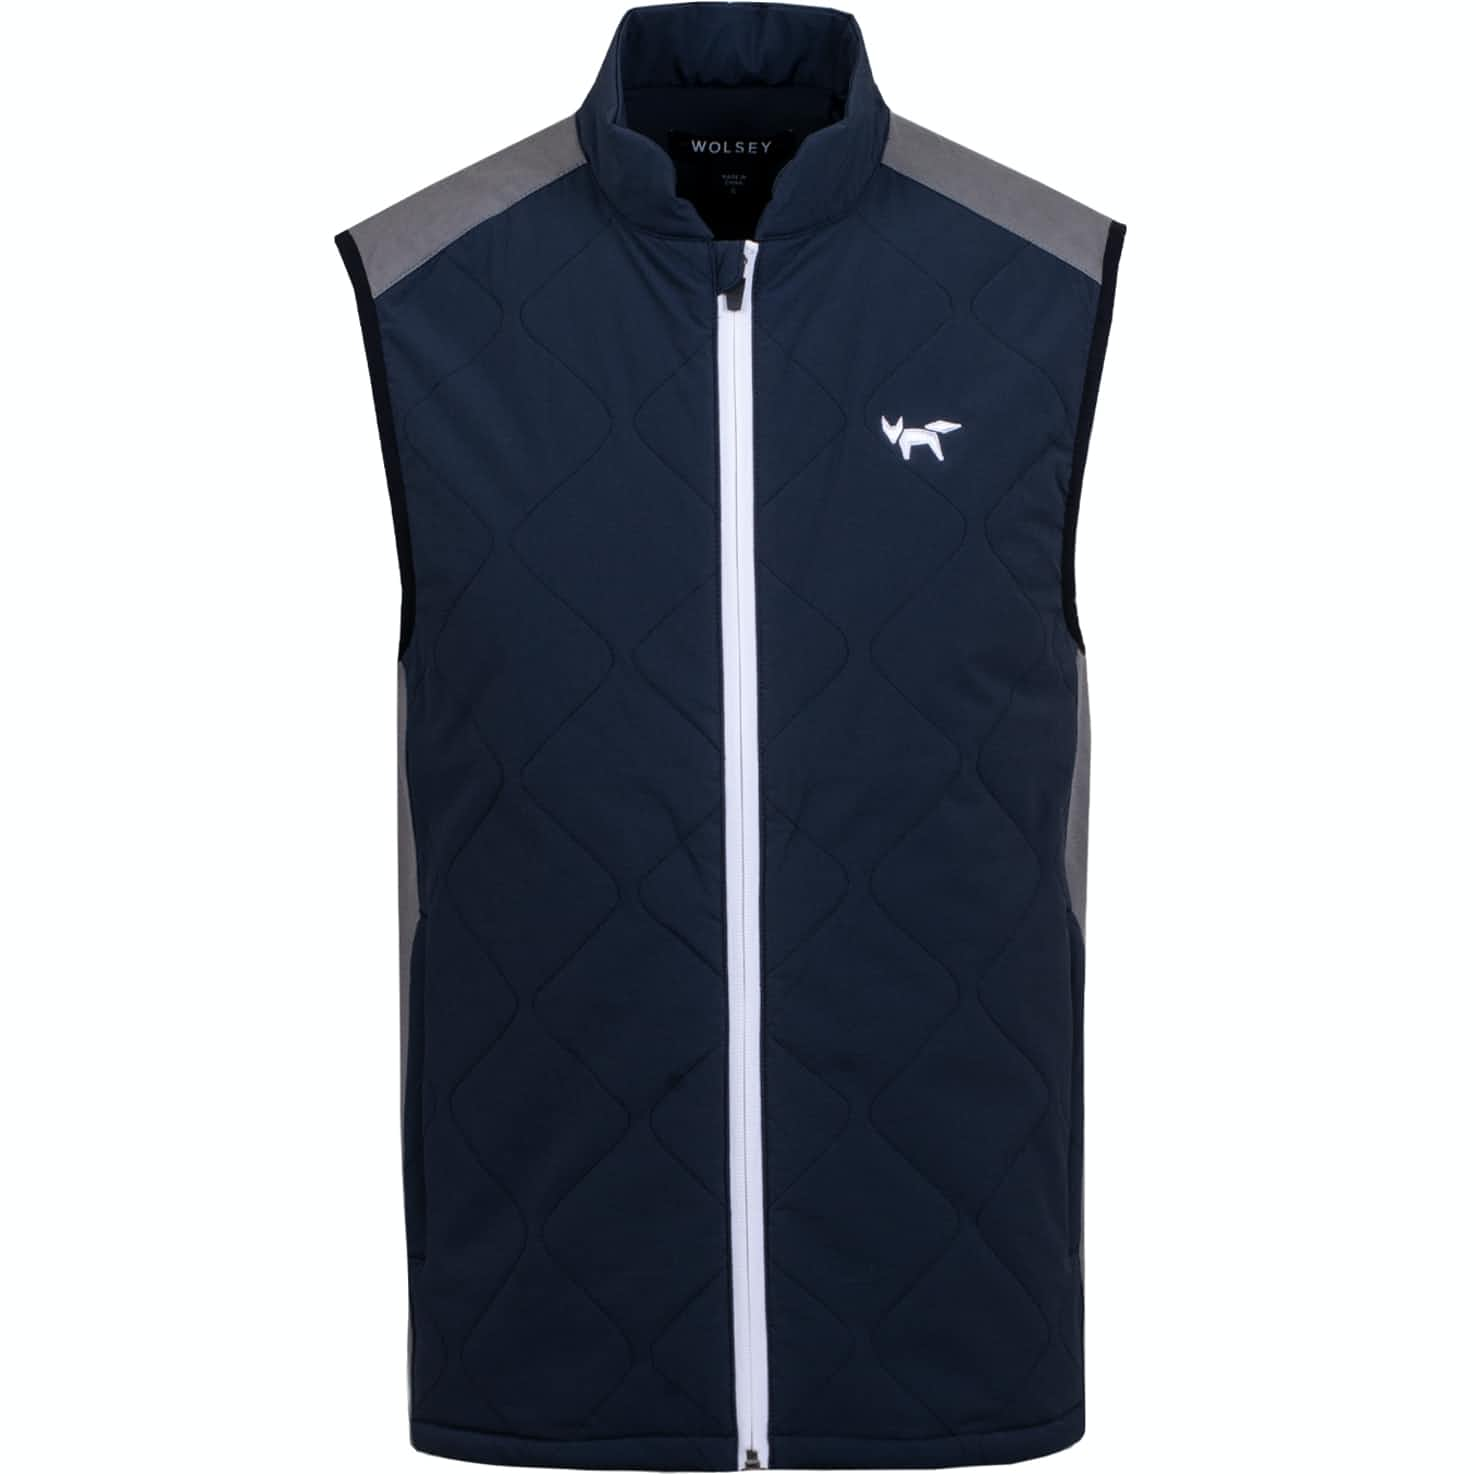 Insulator Gilet Total Eclipse - AW19